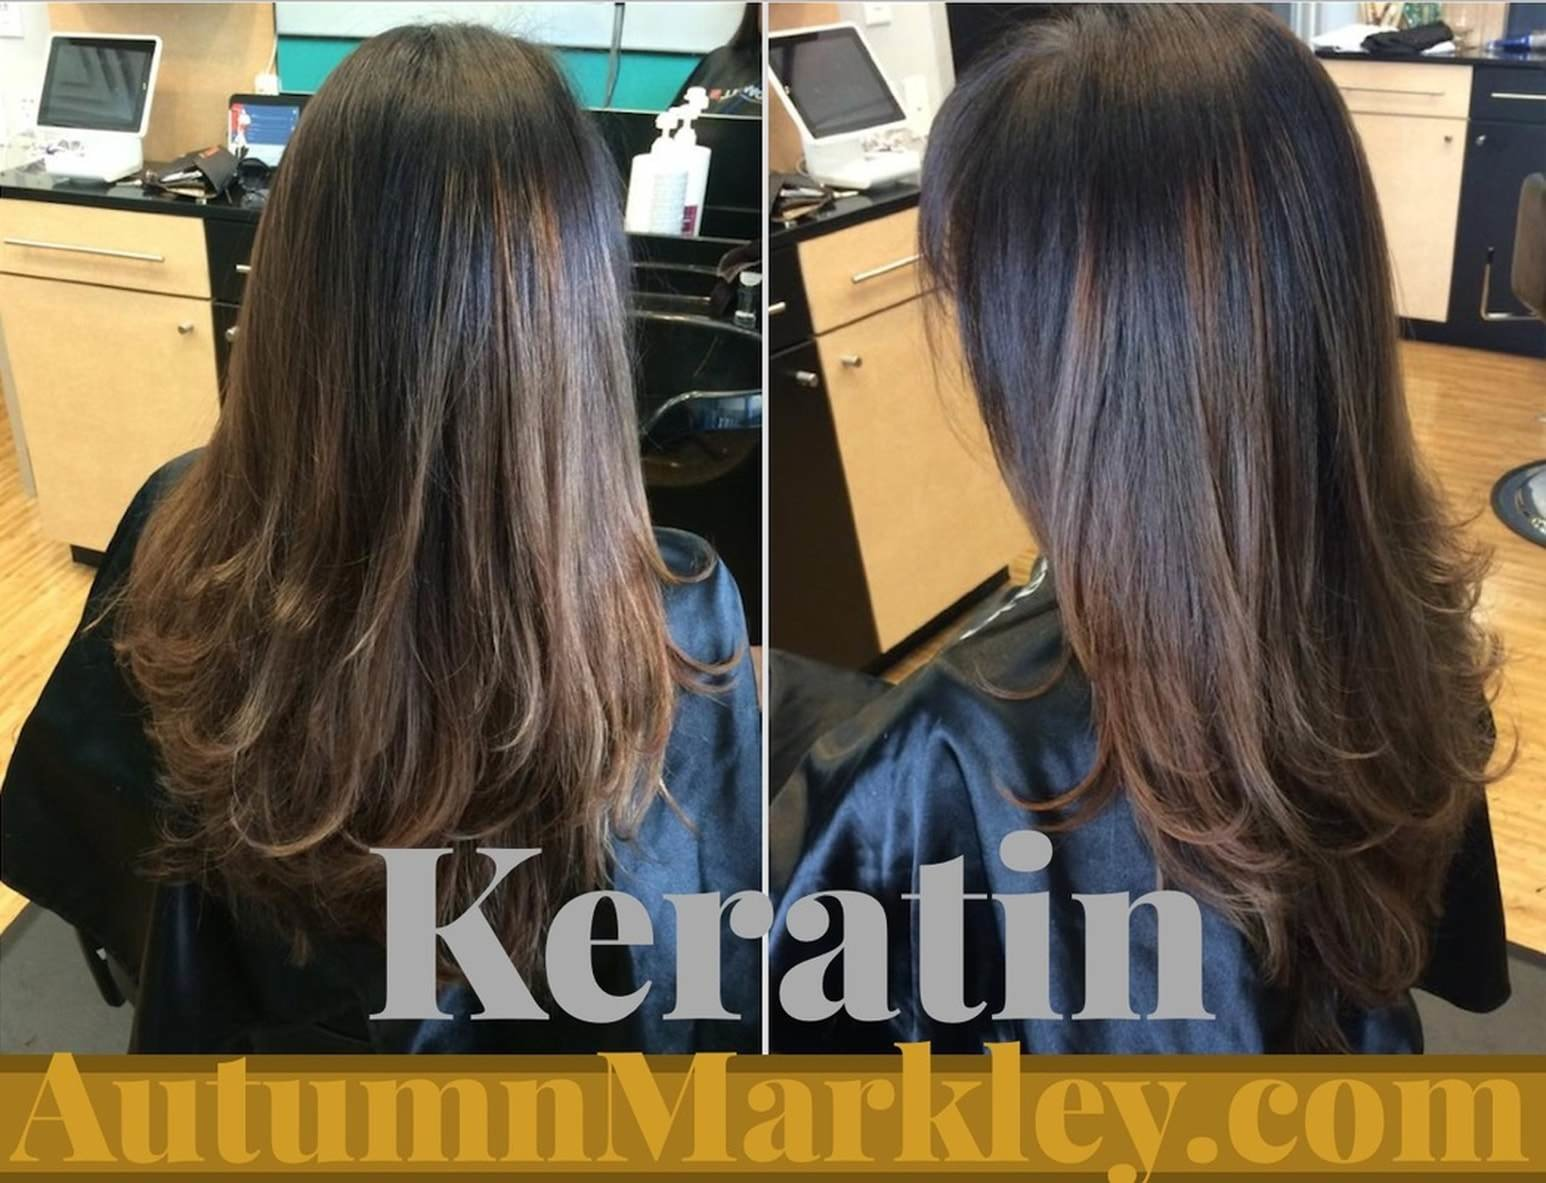 The Best Best Hair Salon In Fort Lauderdale Image Of Hair Salon Pictures